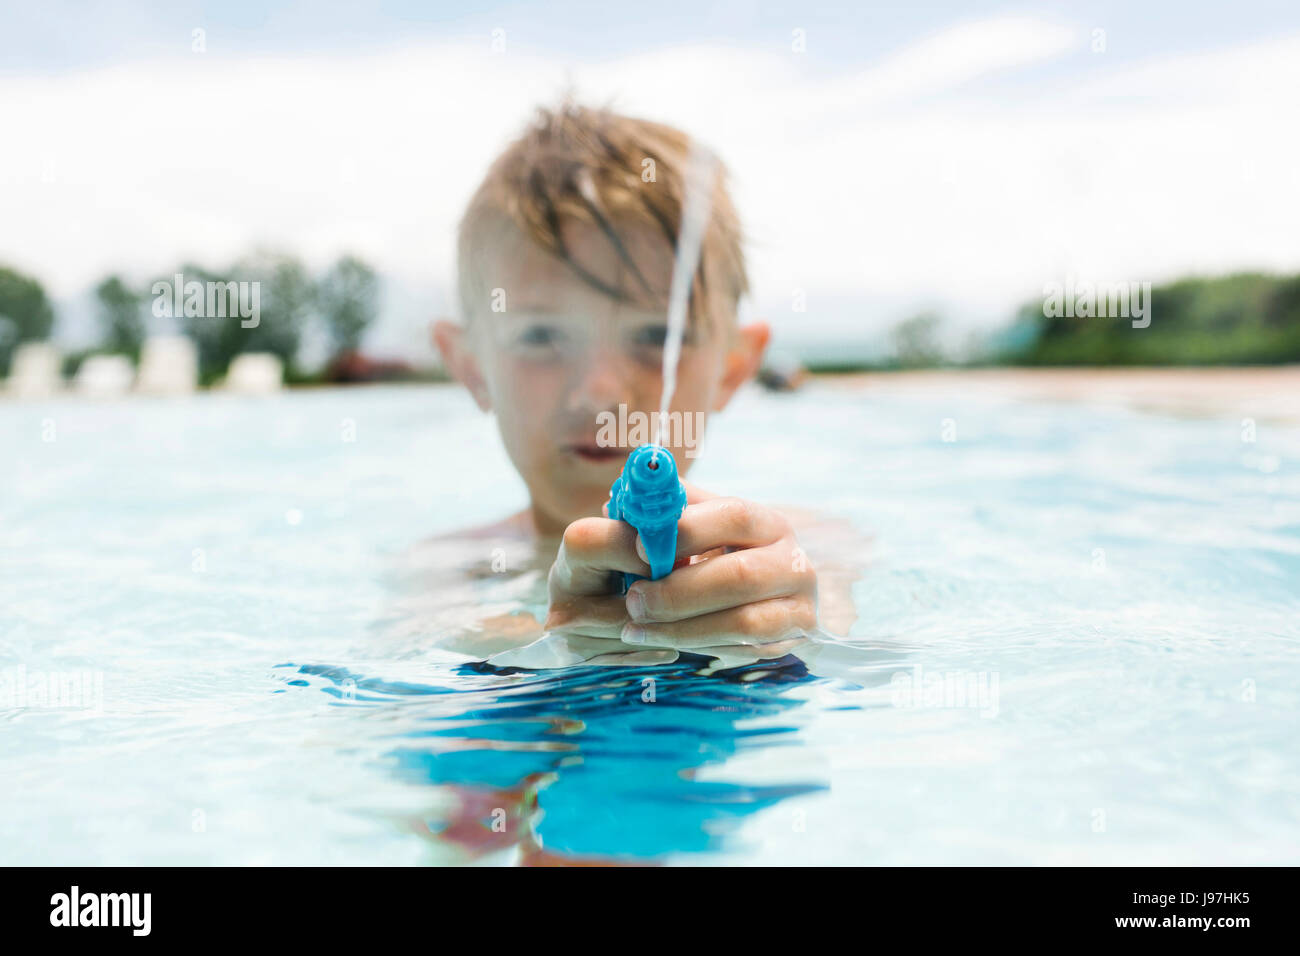 Boy (6-7) playing with squirt gun in swimming pool - Stock Image